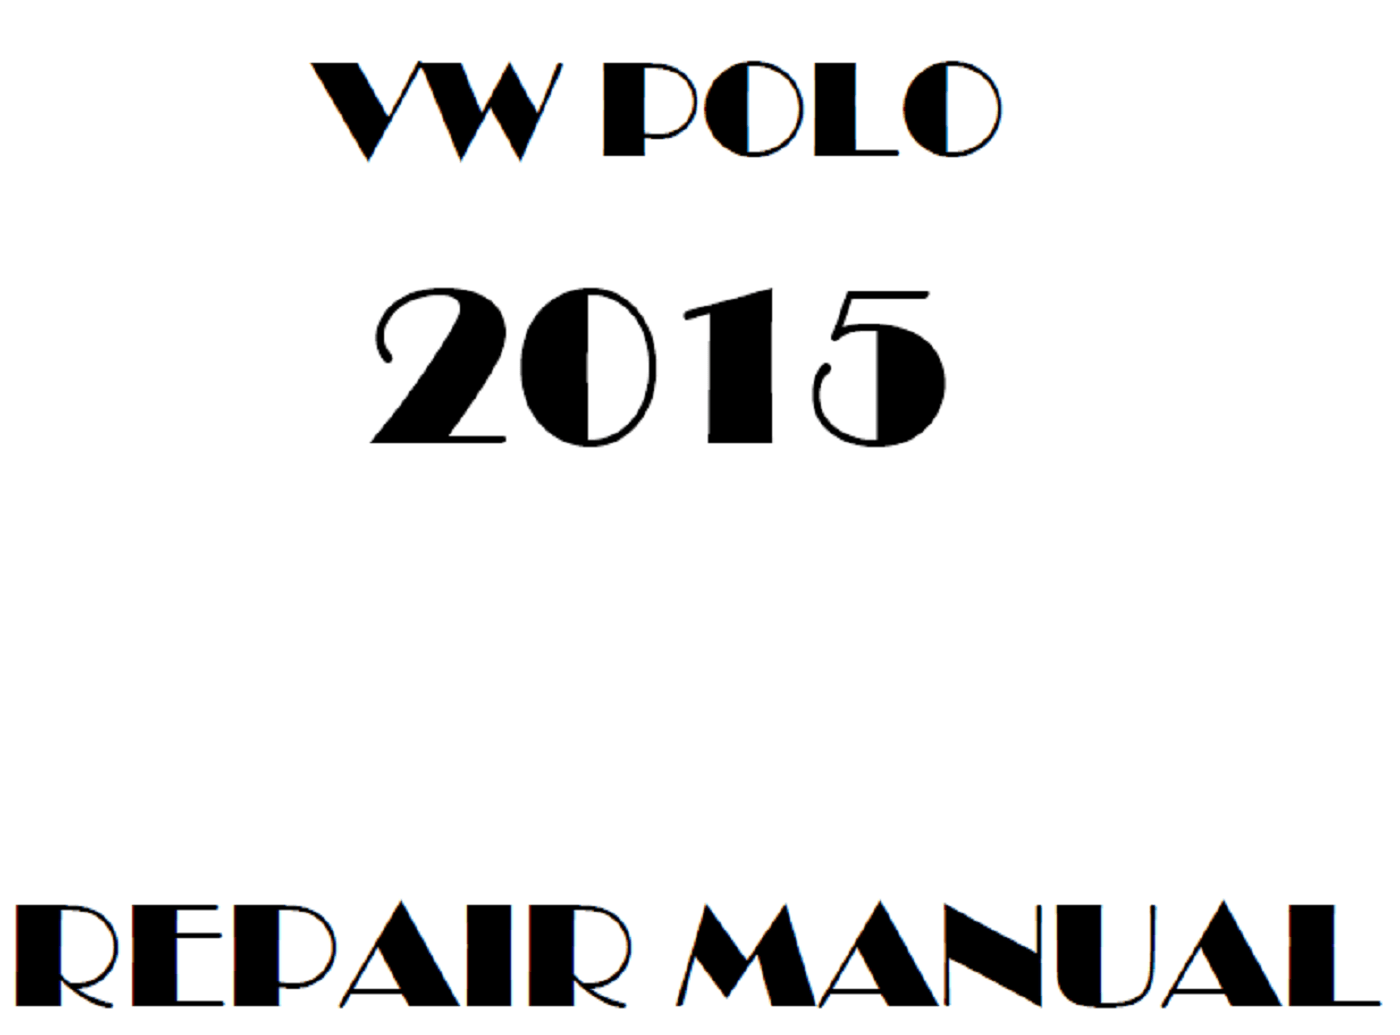 2015 Volkswagen Polo repair manual